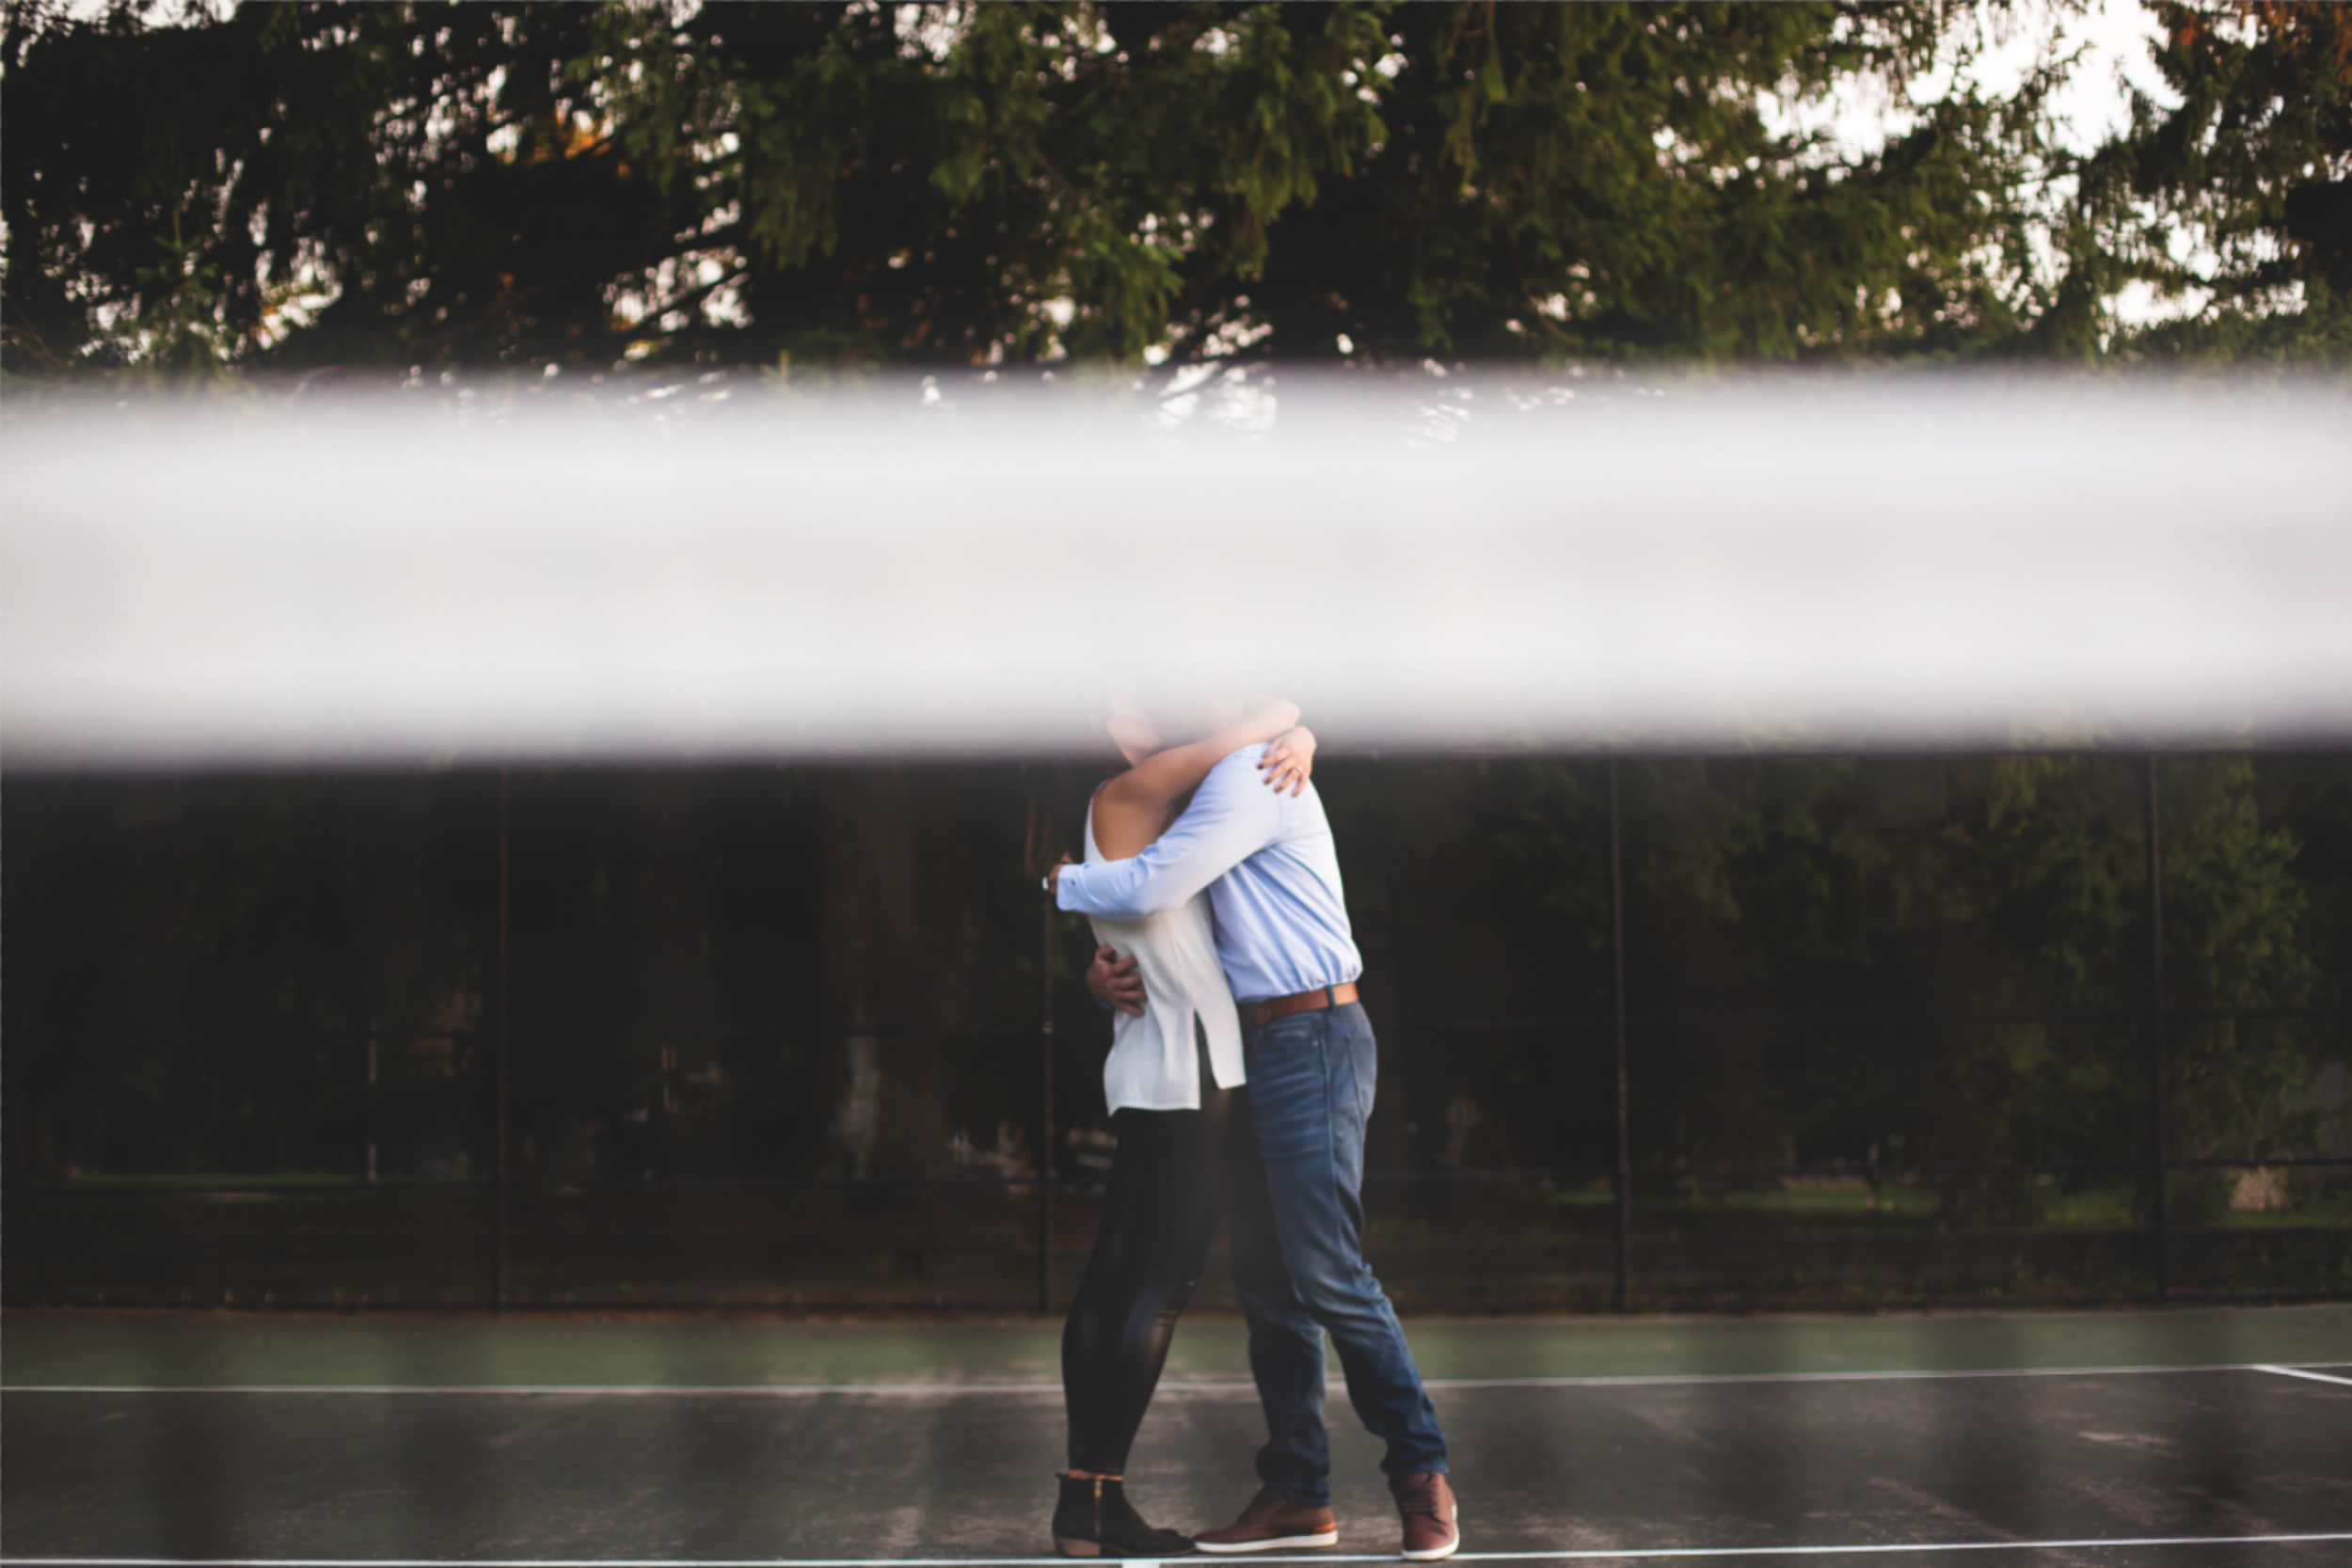 Engagement-Photos-Guelph-Park-Photographer-Wedding-Hamilton-GTA-Niagara-Oakville-Guelph-Tennis-Court-Basketball-Modern-Moments-by-Lauren-Engaged-Photography-Photo-Image-9.png